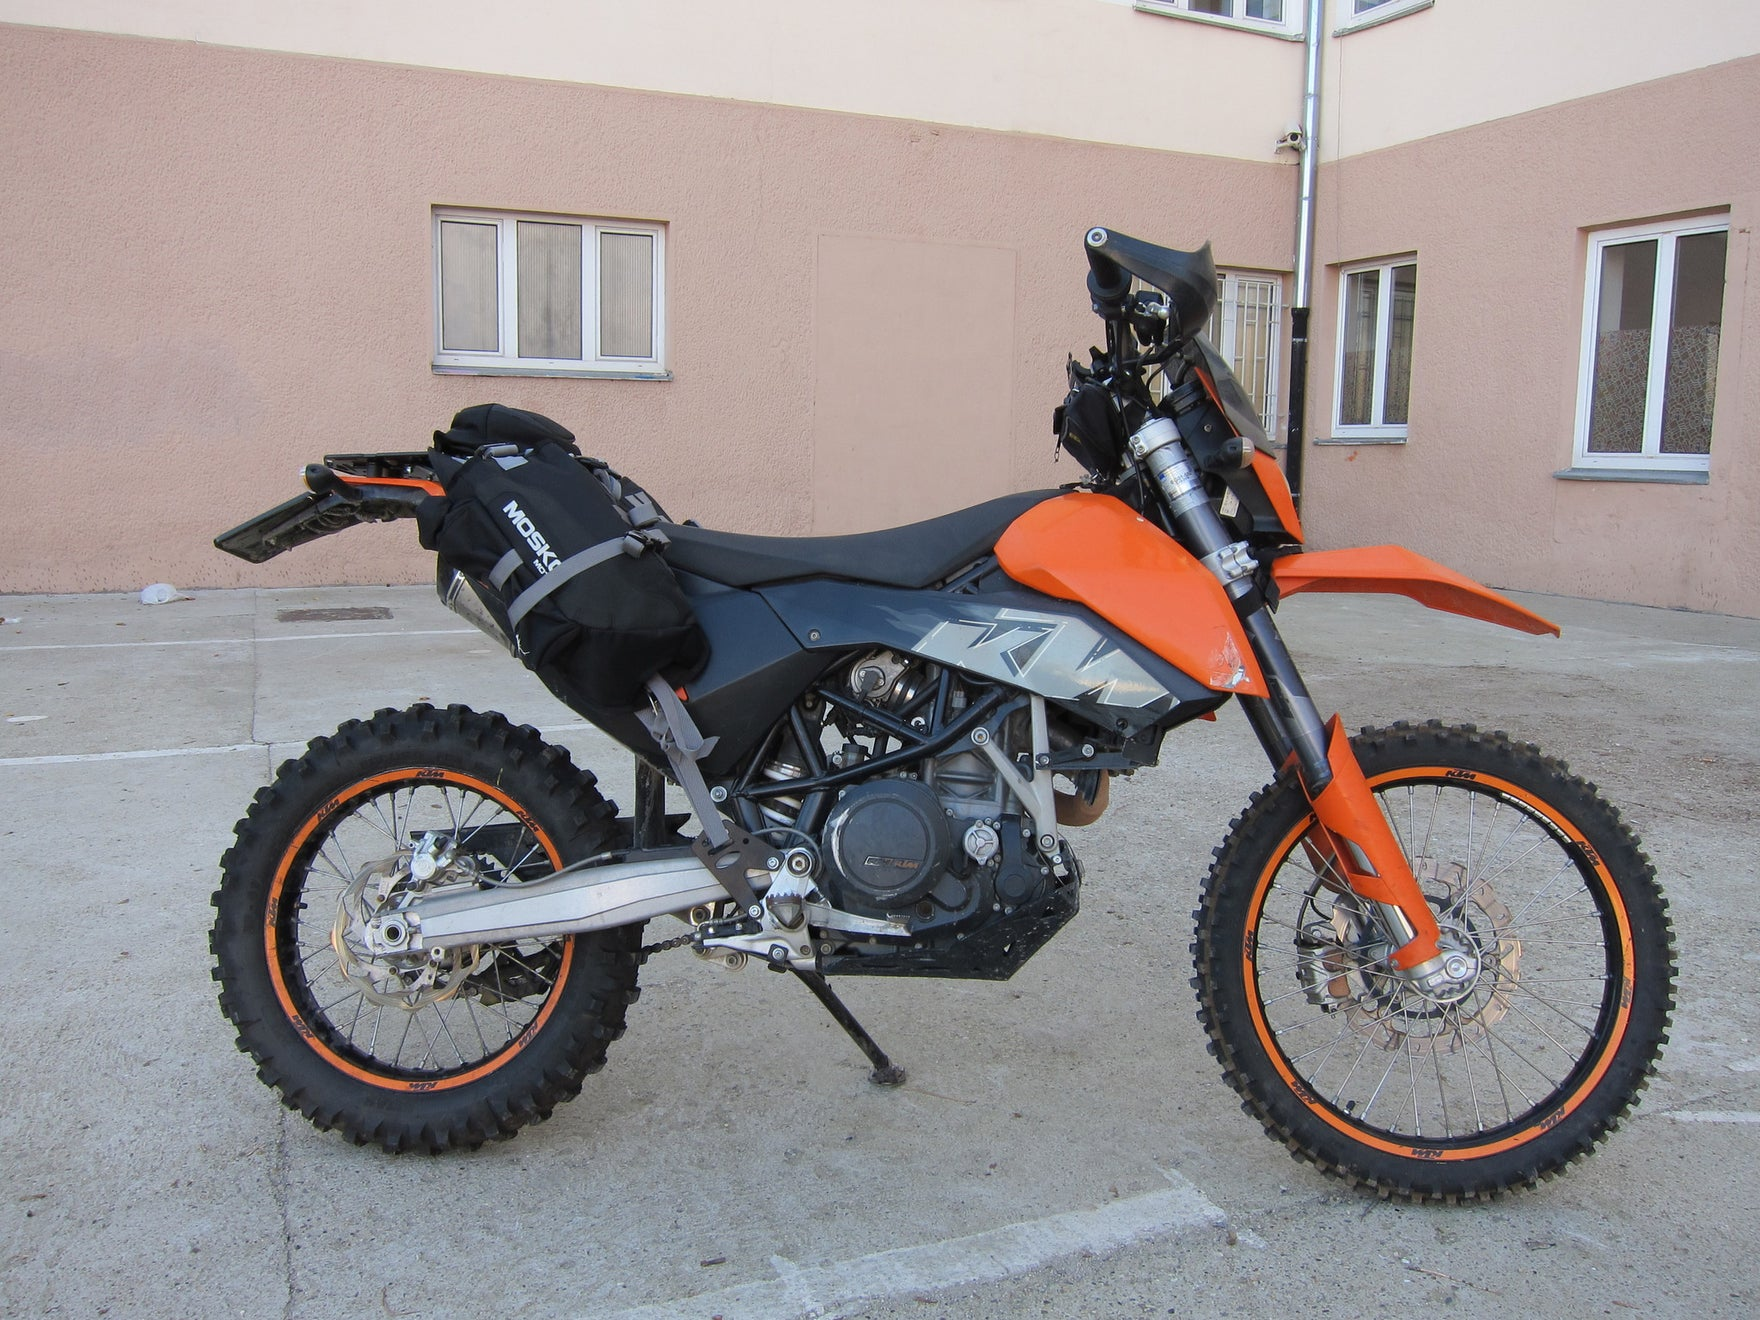 Mosko moto Reckless 40 bags, Perun moto KTM 690 Enduro Luggage rack SD and Heel guards